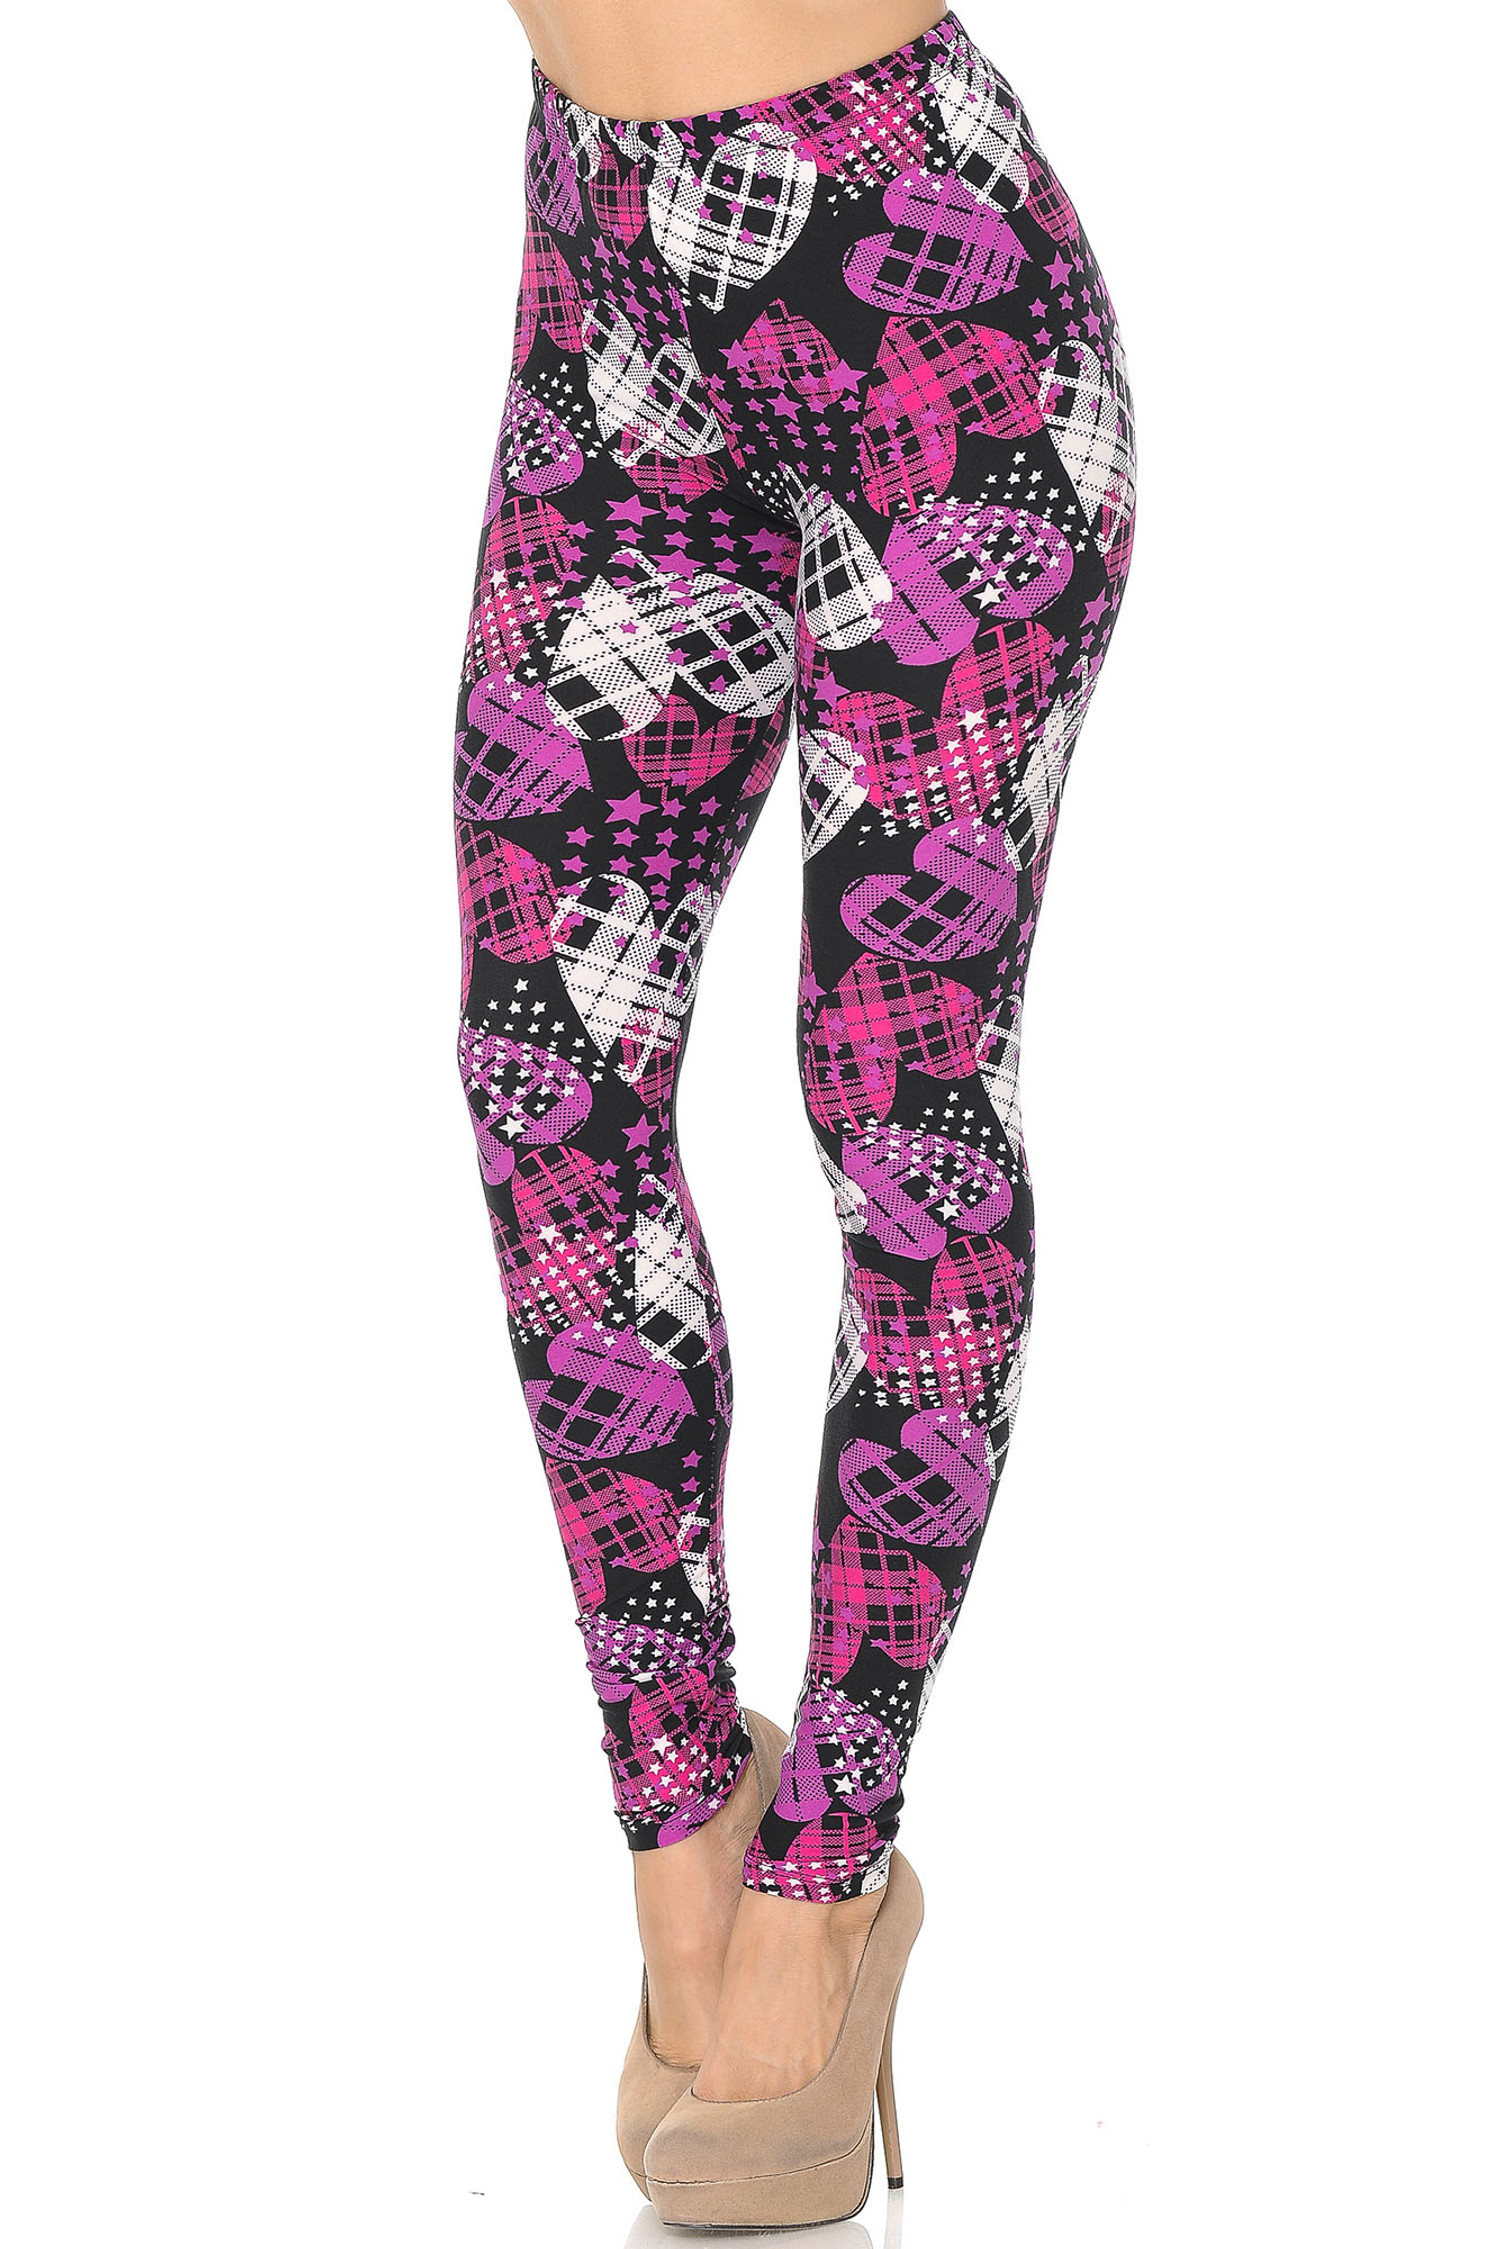 Soft Brushed Stars and Plaid Hearts Leggings